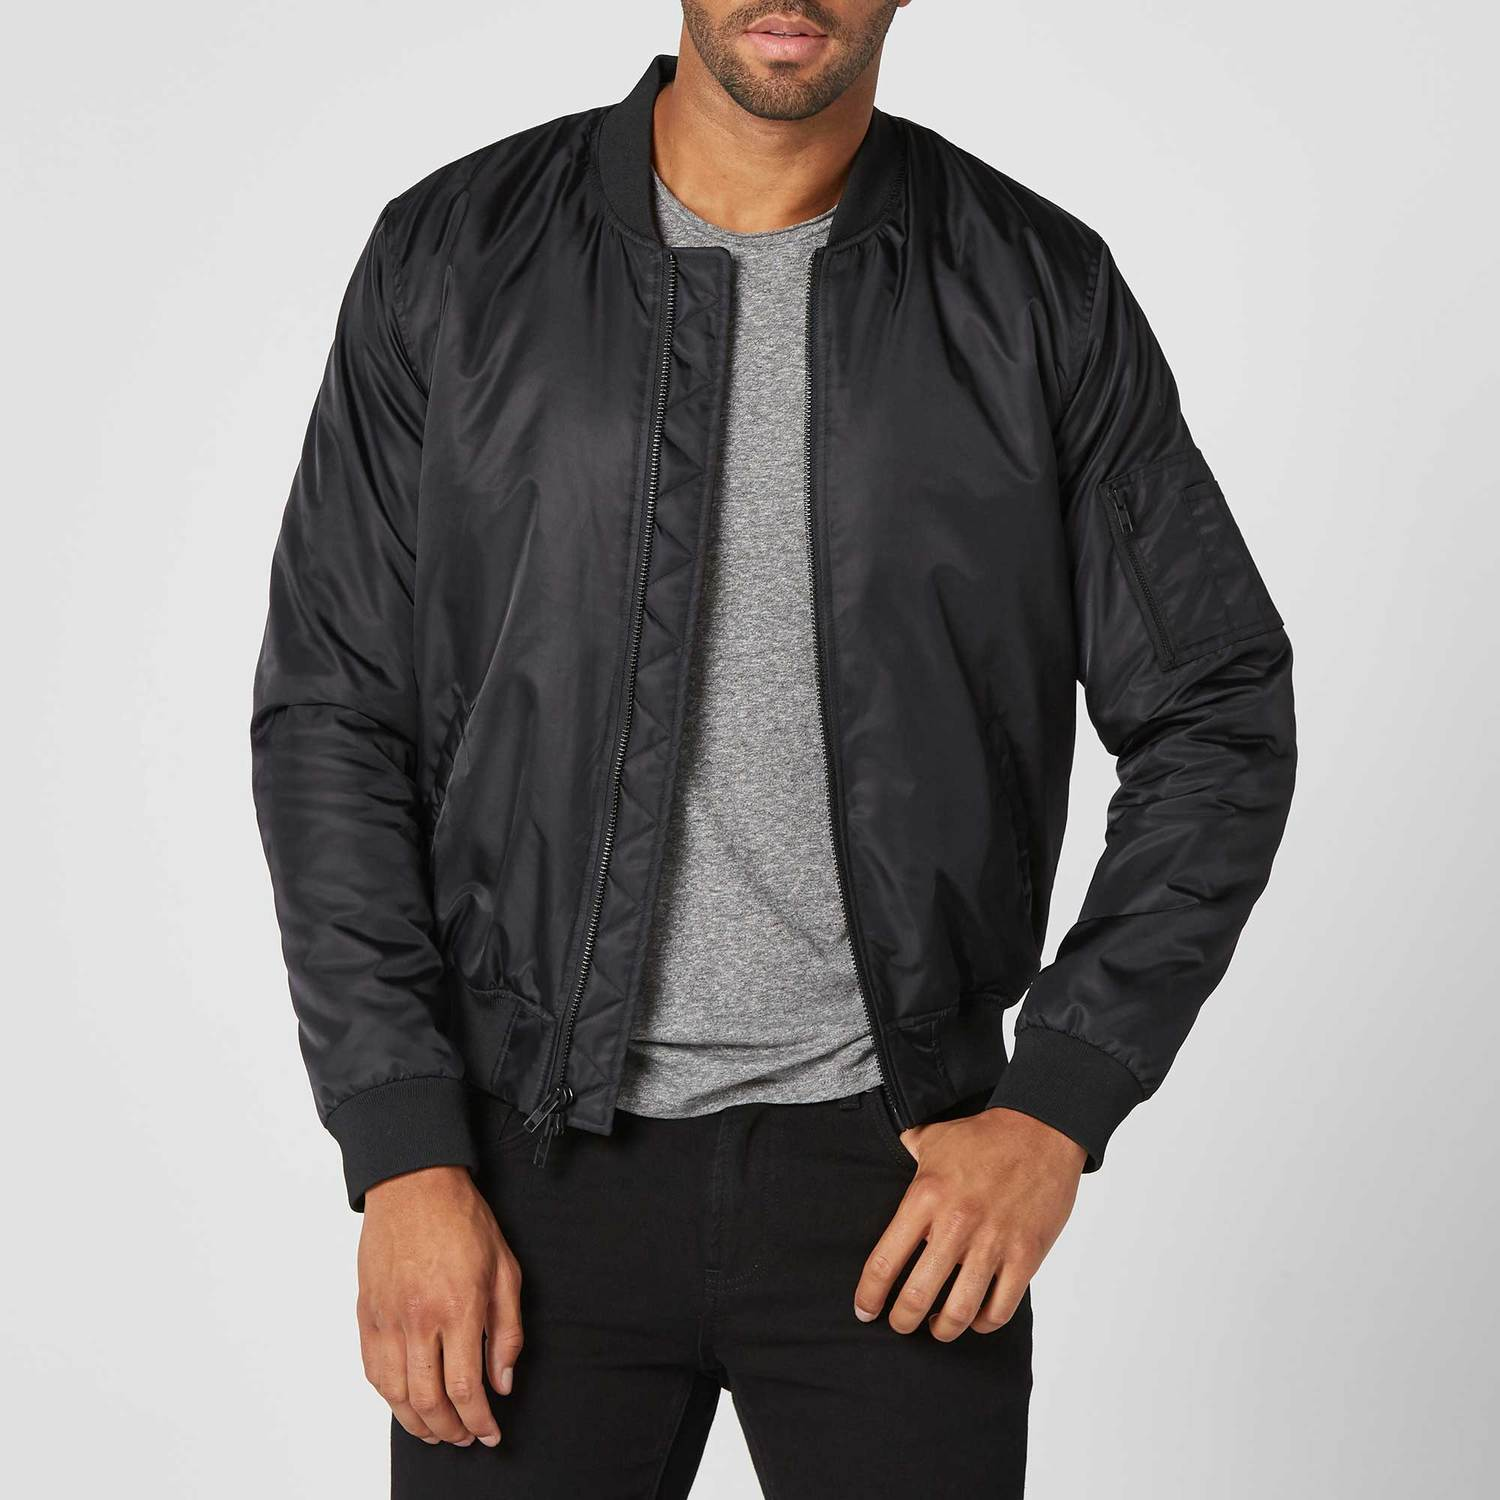 7cd5fbd9b33 Mens Nylon Bomber Jacket  135